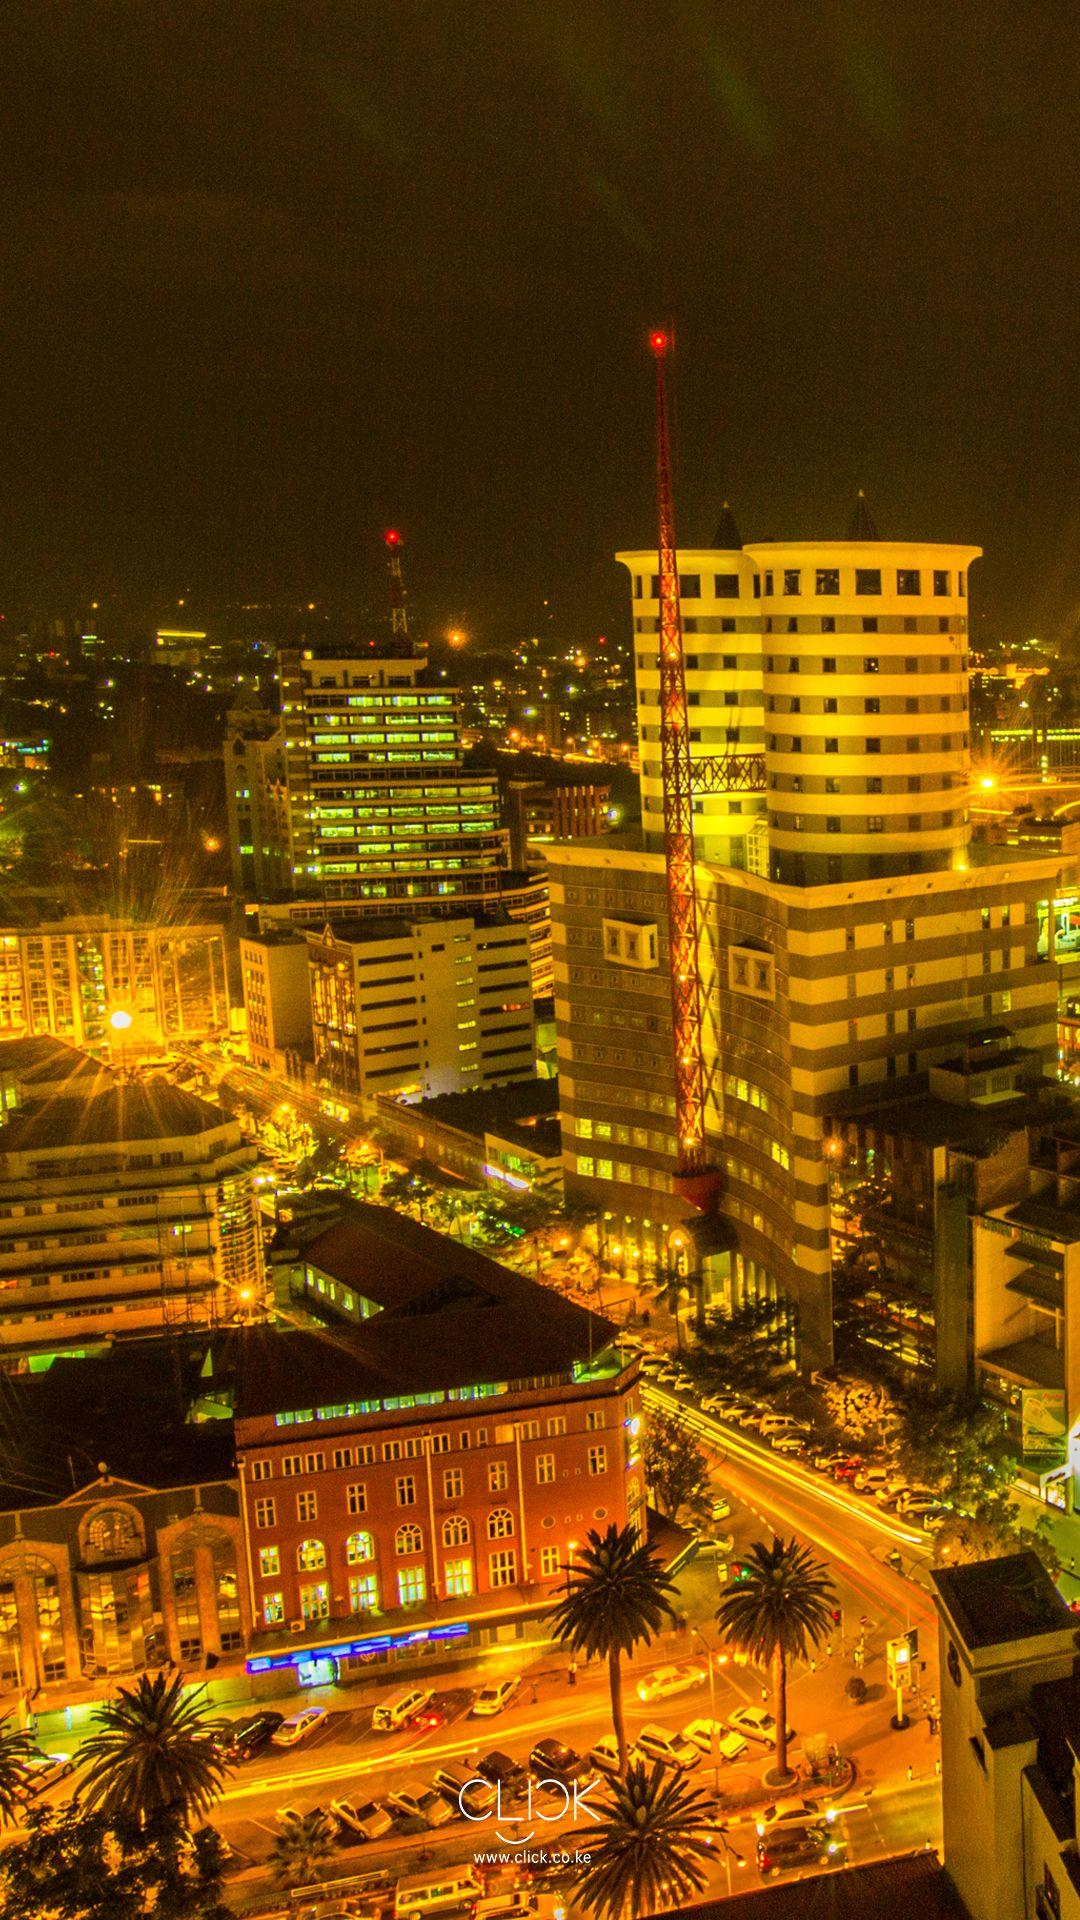 African Screens 48 – Nairobi Nightscape | Clicking with Purpose